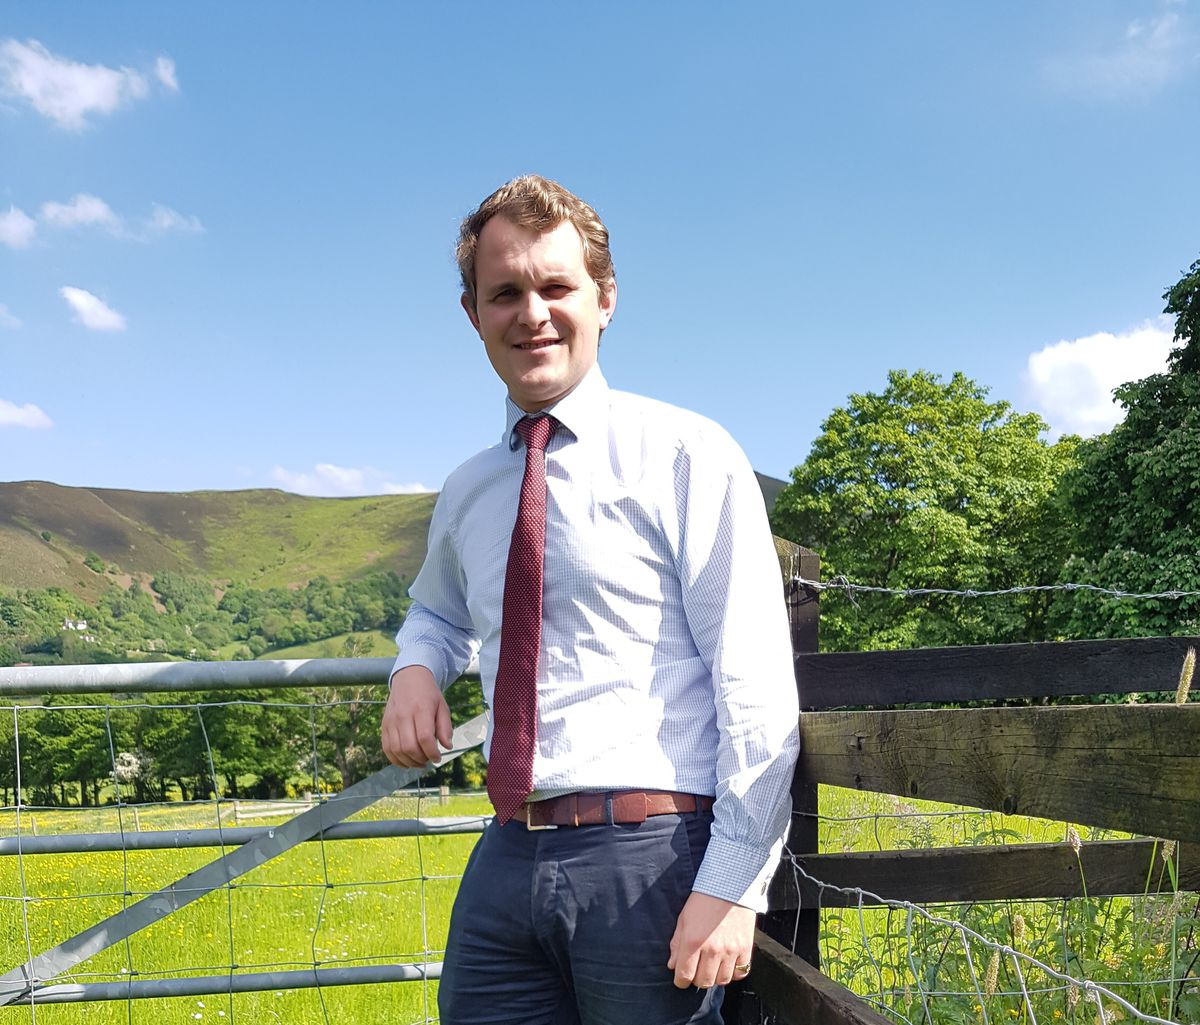 Peter Daborn, partner that manages the Roger Parry & Partners Shrewsbury office